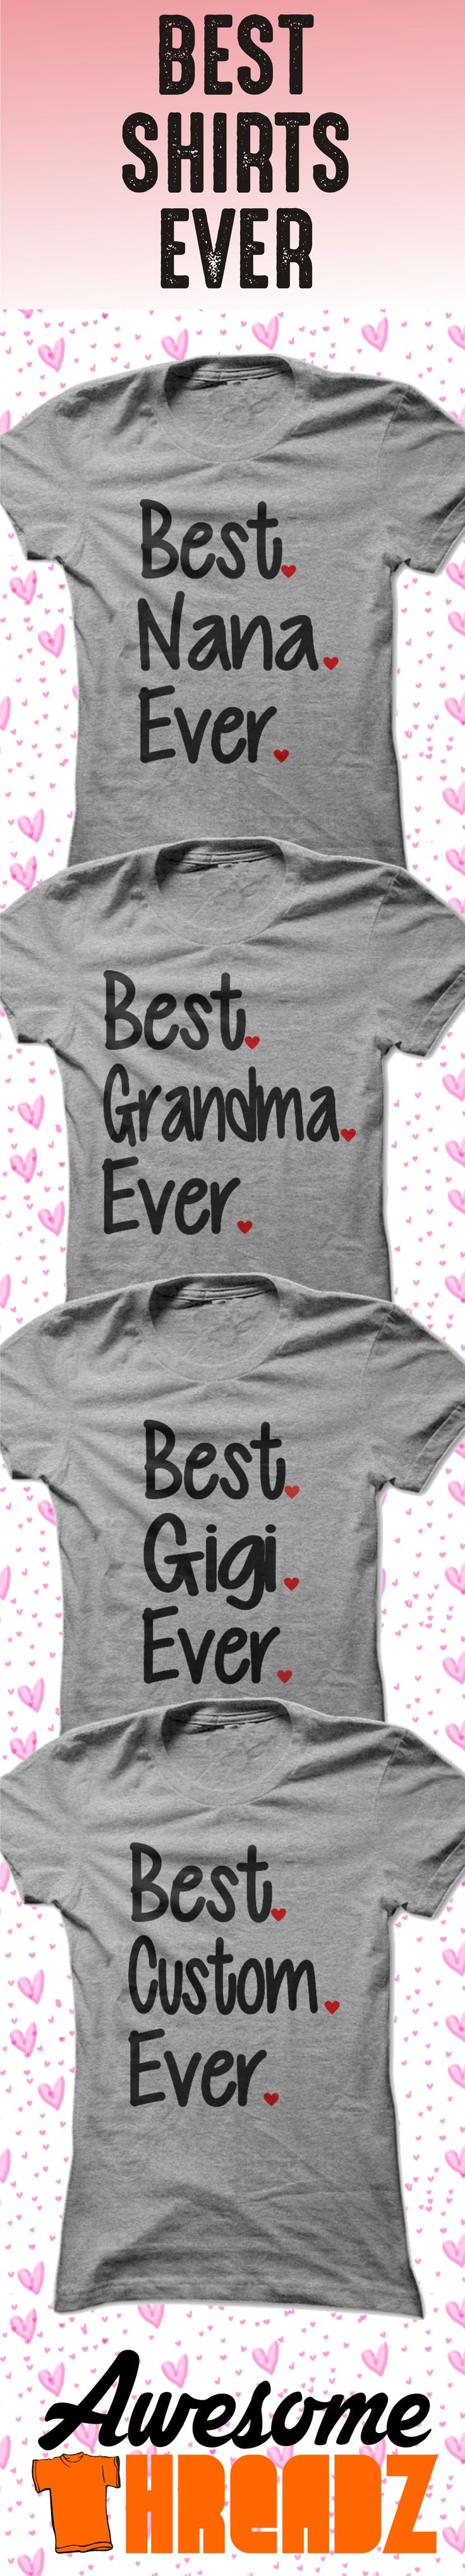 Grandmothers are the best no matter what you call them. Mimi, Nana, Nanny, Ma, or Grandma. We even do custom shirts. Just let us know what you want printed.